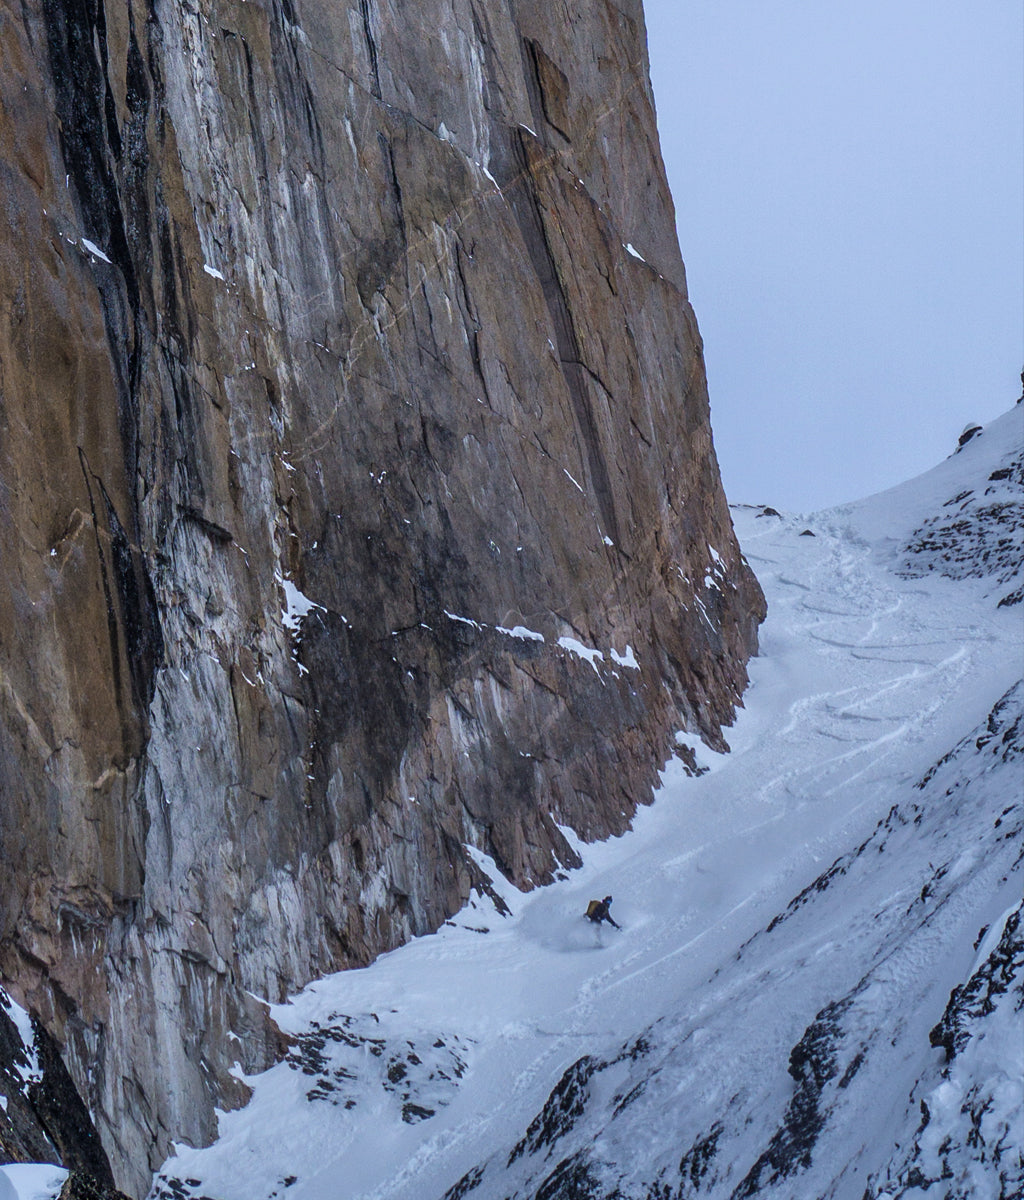 Venture Snowboards Couloir in Tombstone Provincial Park